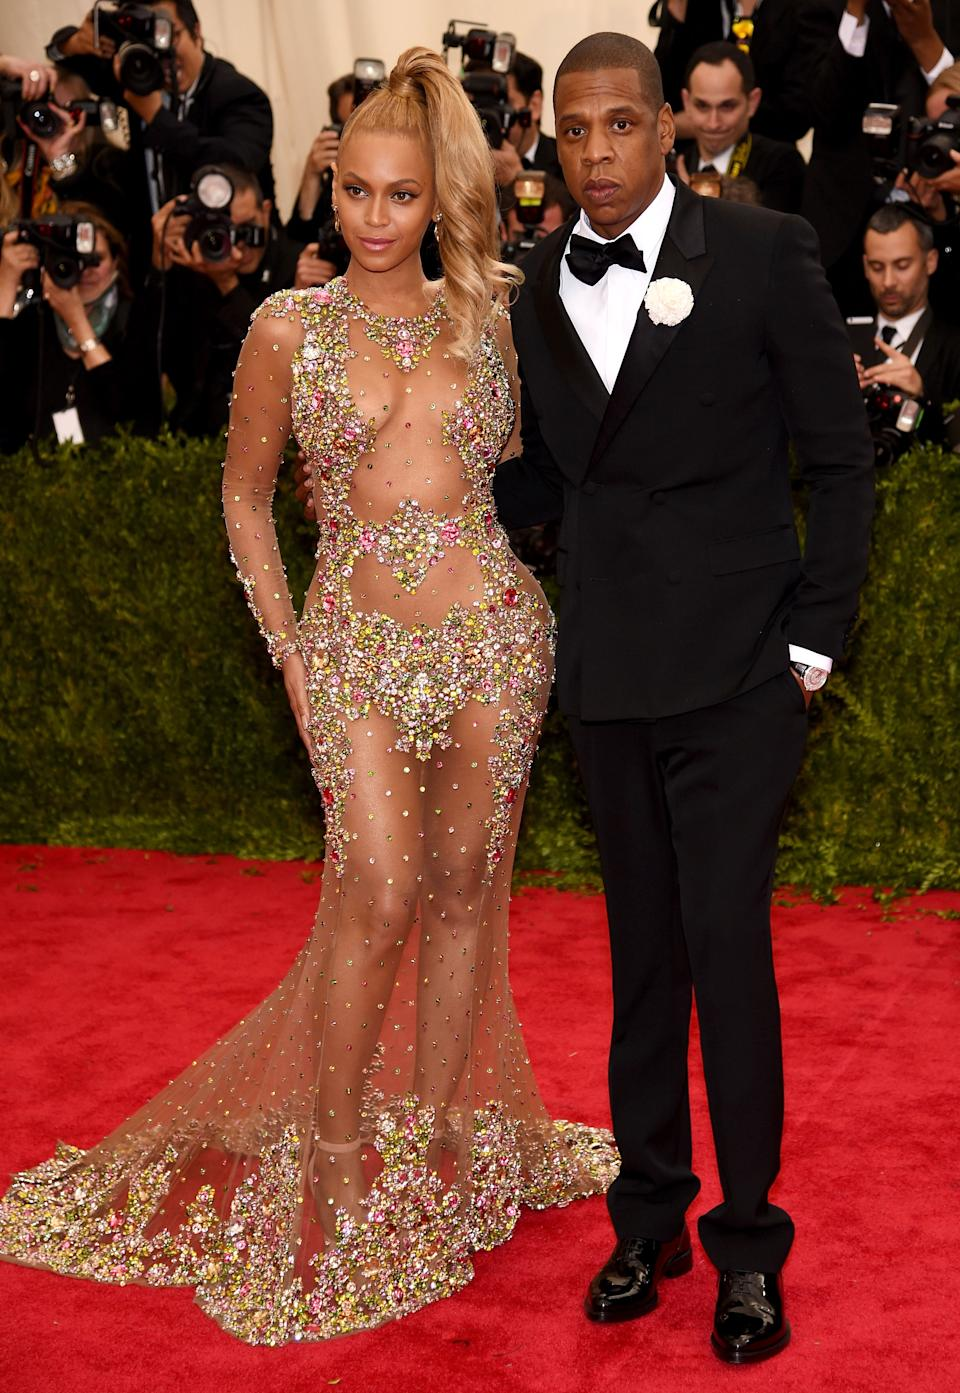 <p>It's been more than 20 years since Beyoncé and Jay-Z met on a flight to an MTV Spring Break Festival in Cancun. The pair went on to build both a family and a billion dollar dynasty that keeps producing hit after hit. <em>(Image via Getty Images)</em></p>